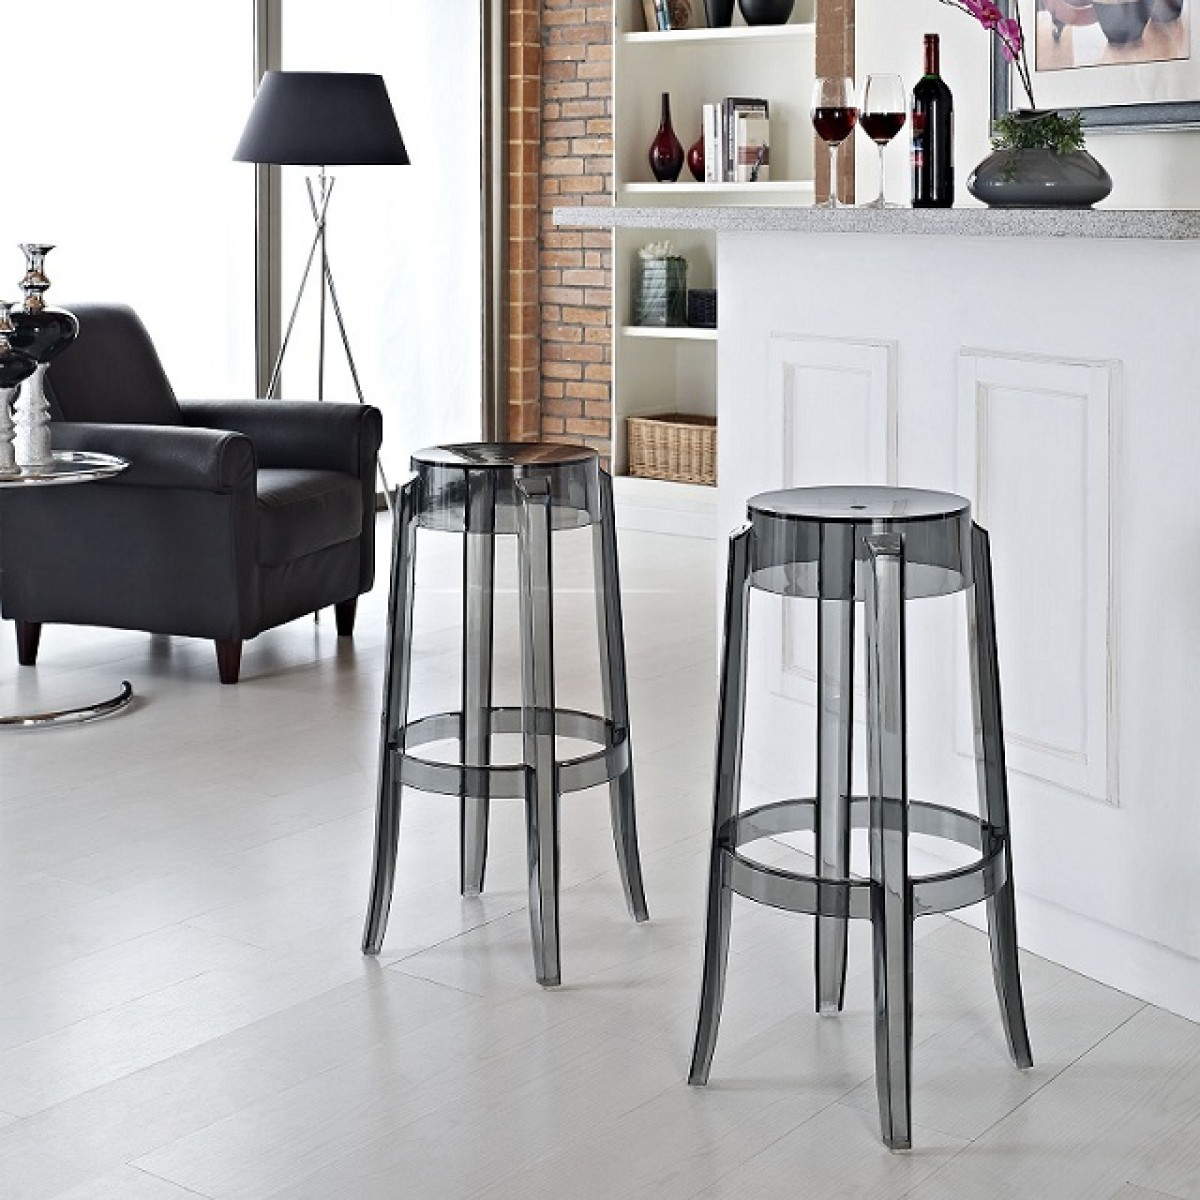 ghost bar chair bedroom rail images set of 2 victoria style stool smoke color